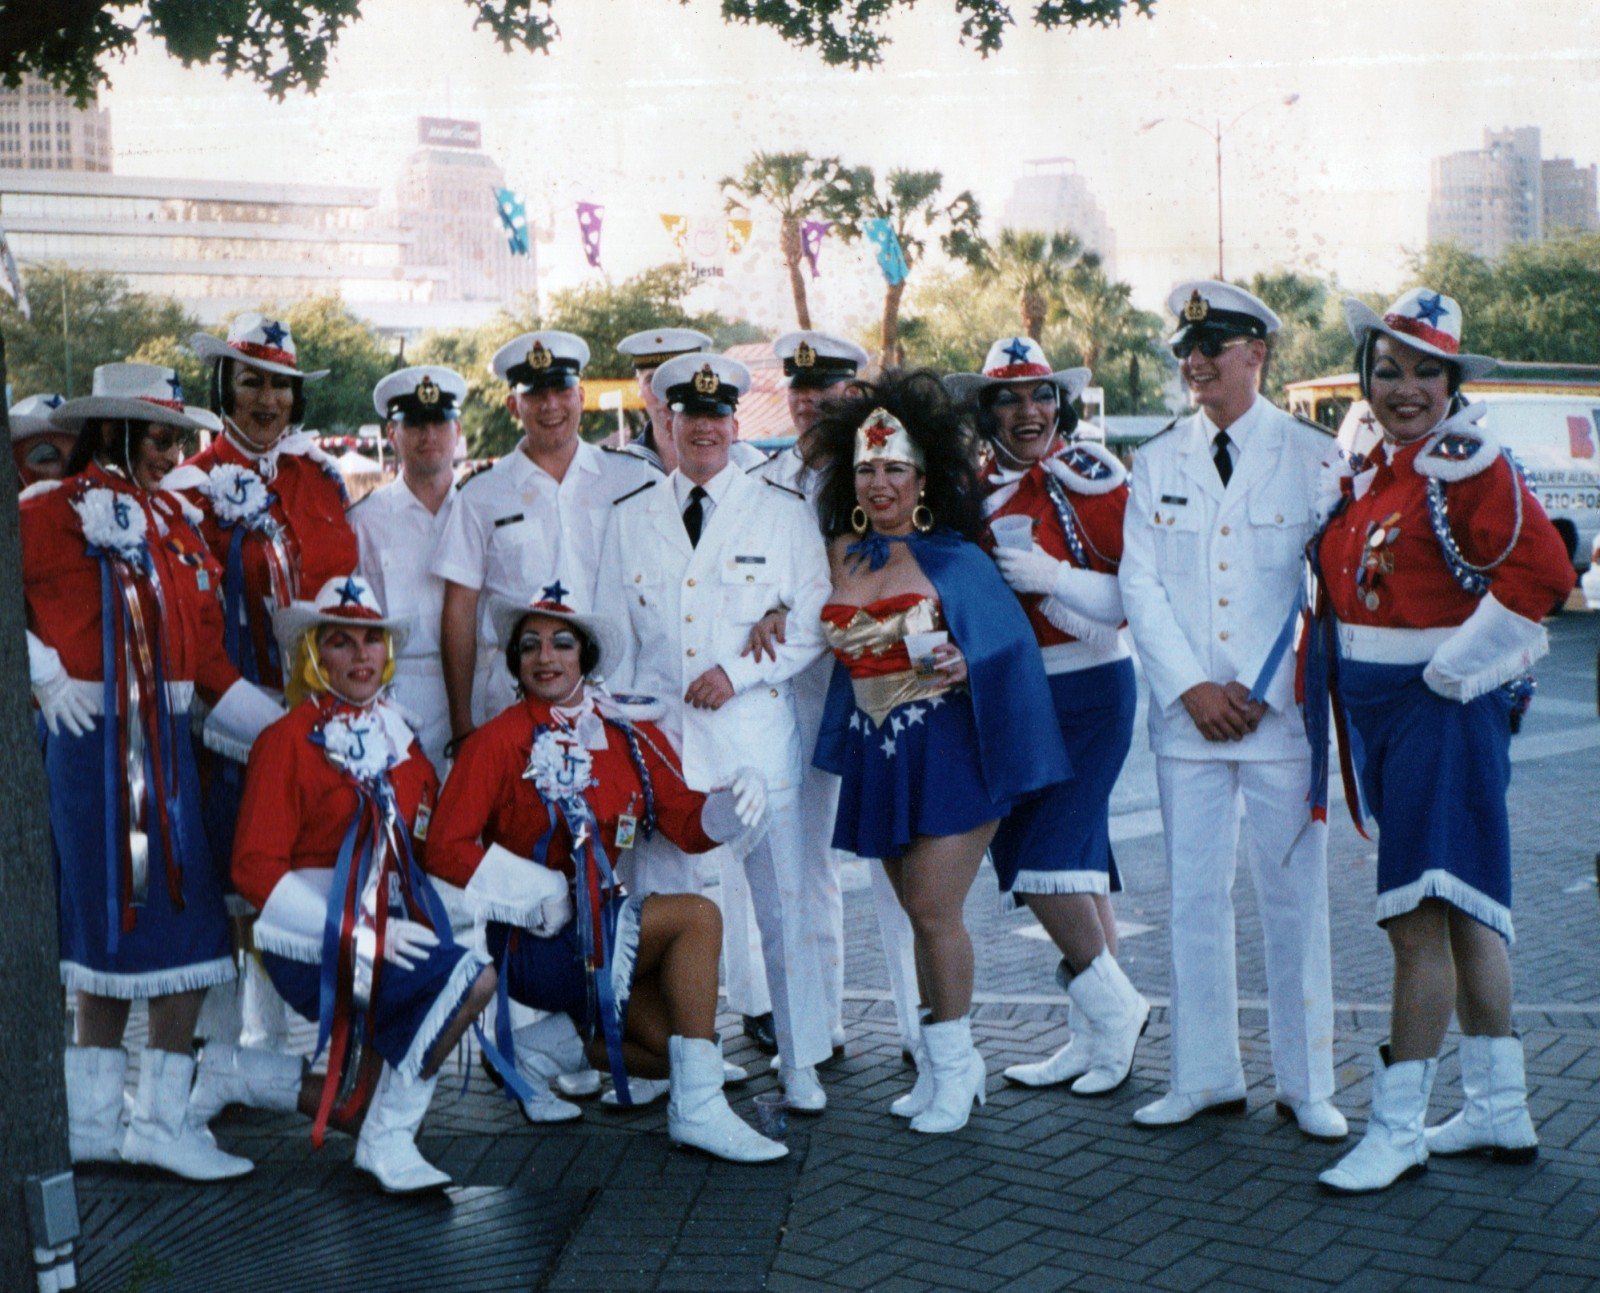 """Chicana Wonder Woman"" Lisa Suarez flanked by Cornyation cast members and Russian soldiers"